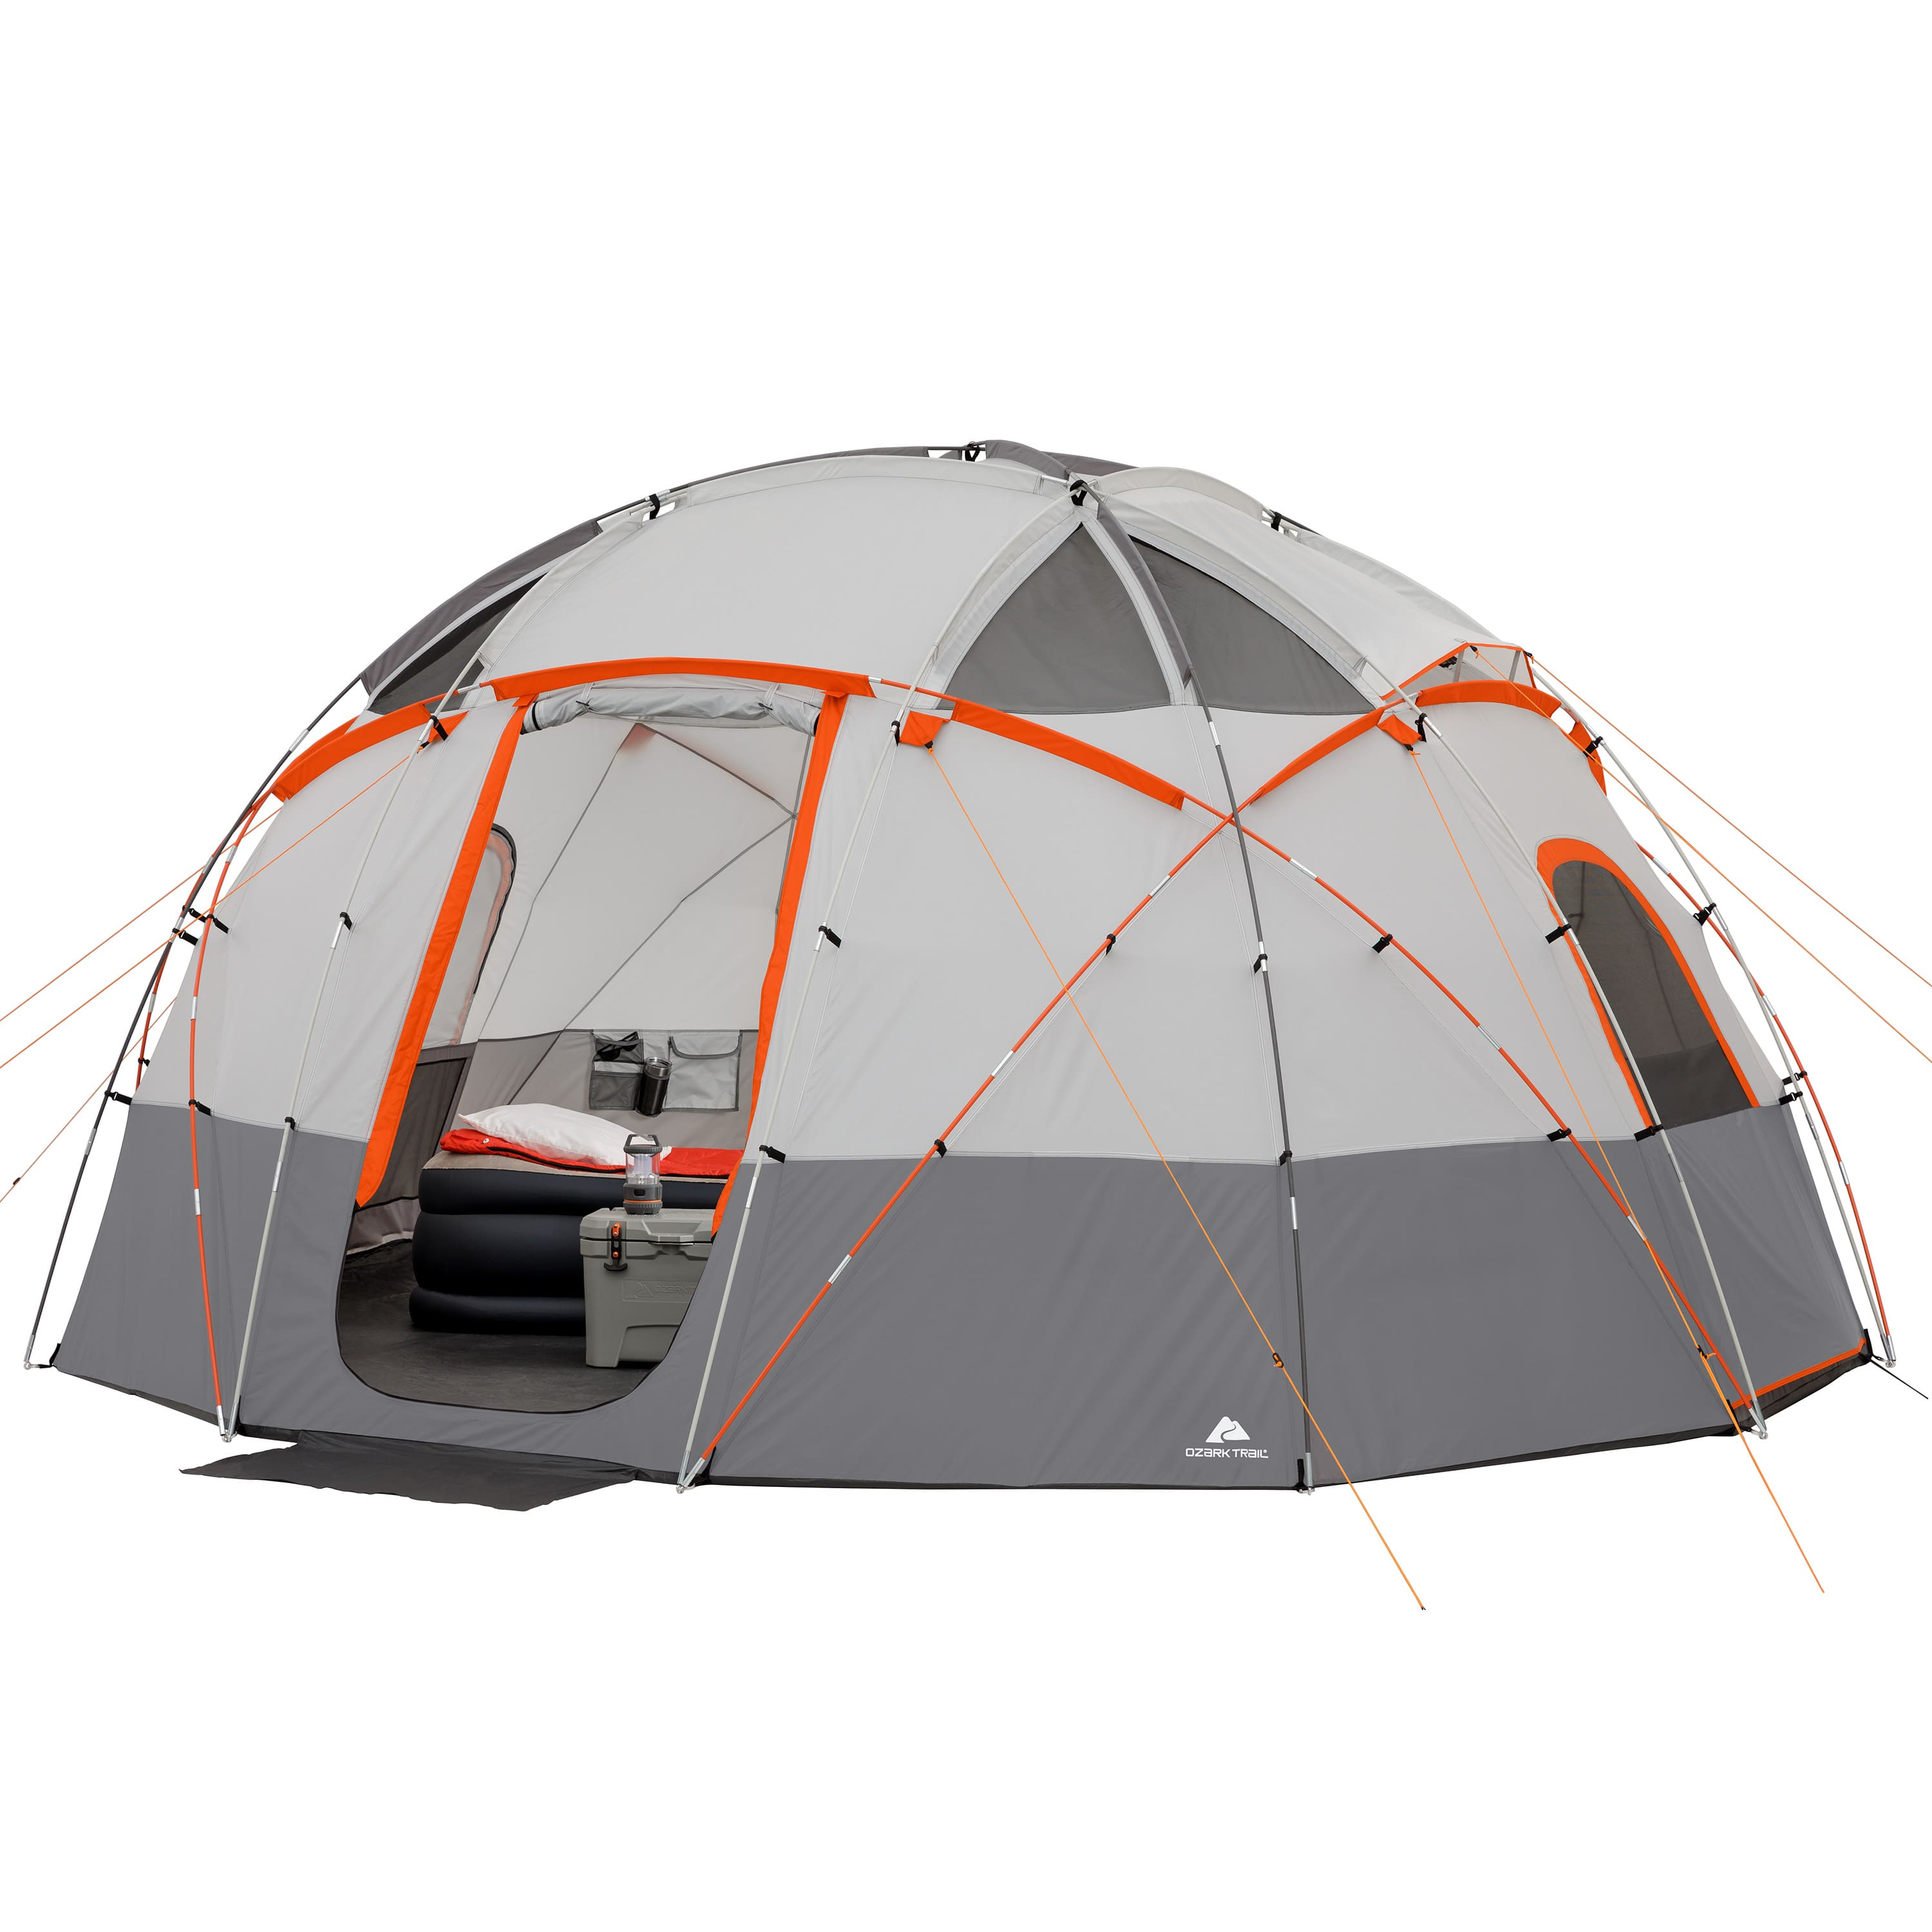 Walmart In store YMMV: Ozark Trail 12 person dome tent with